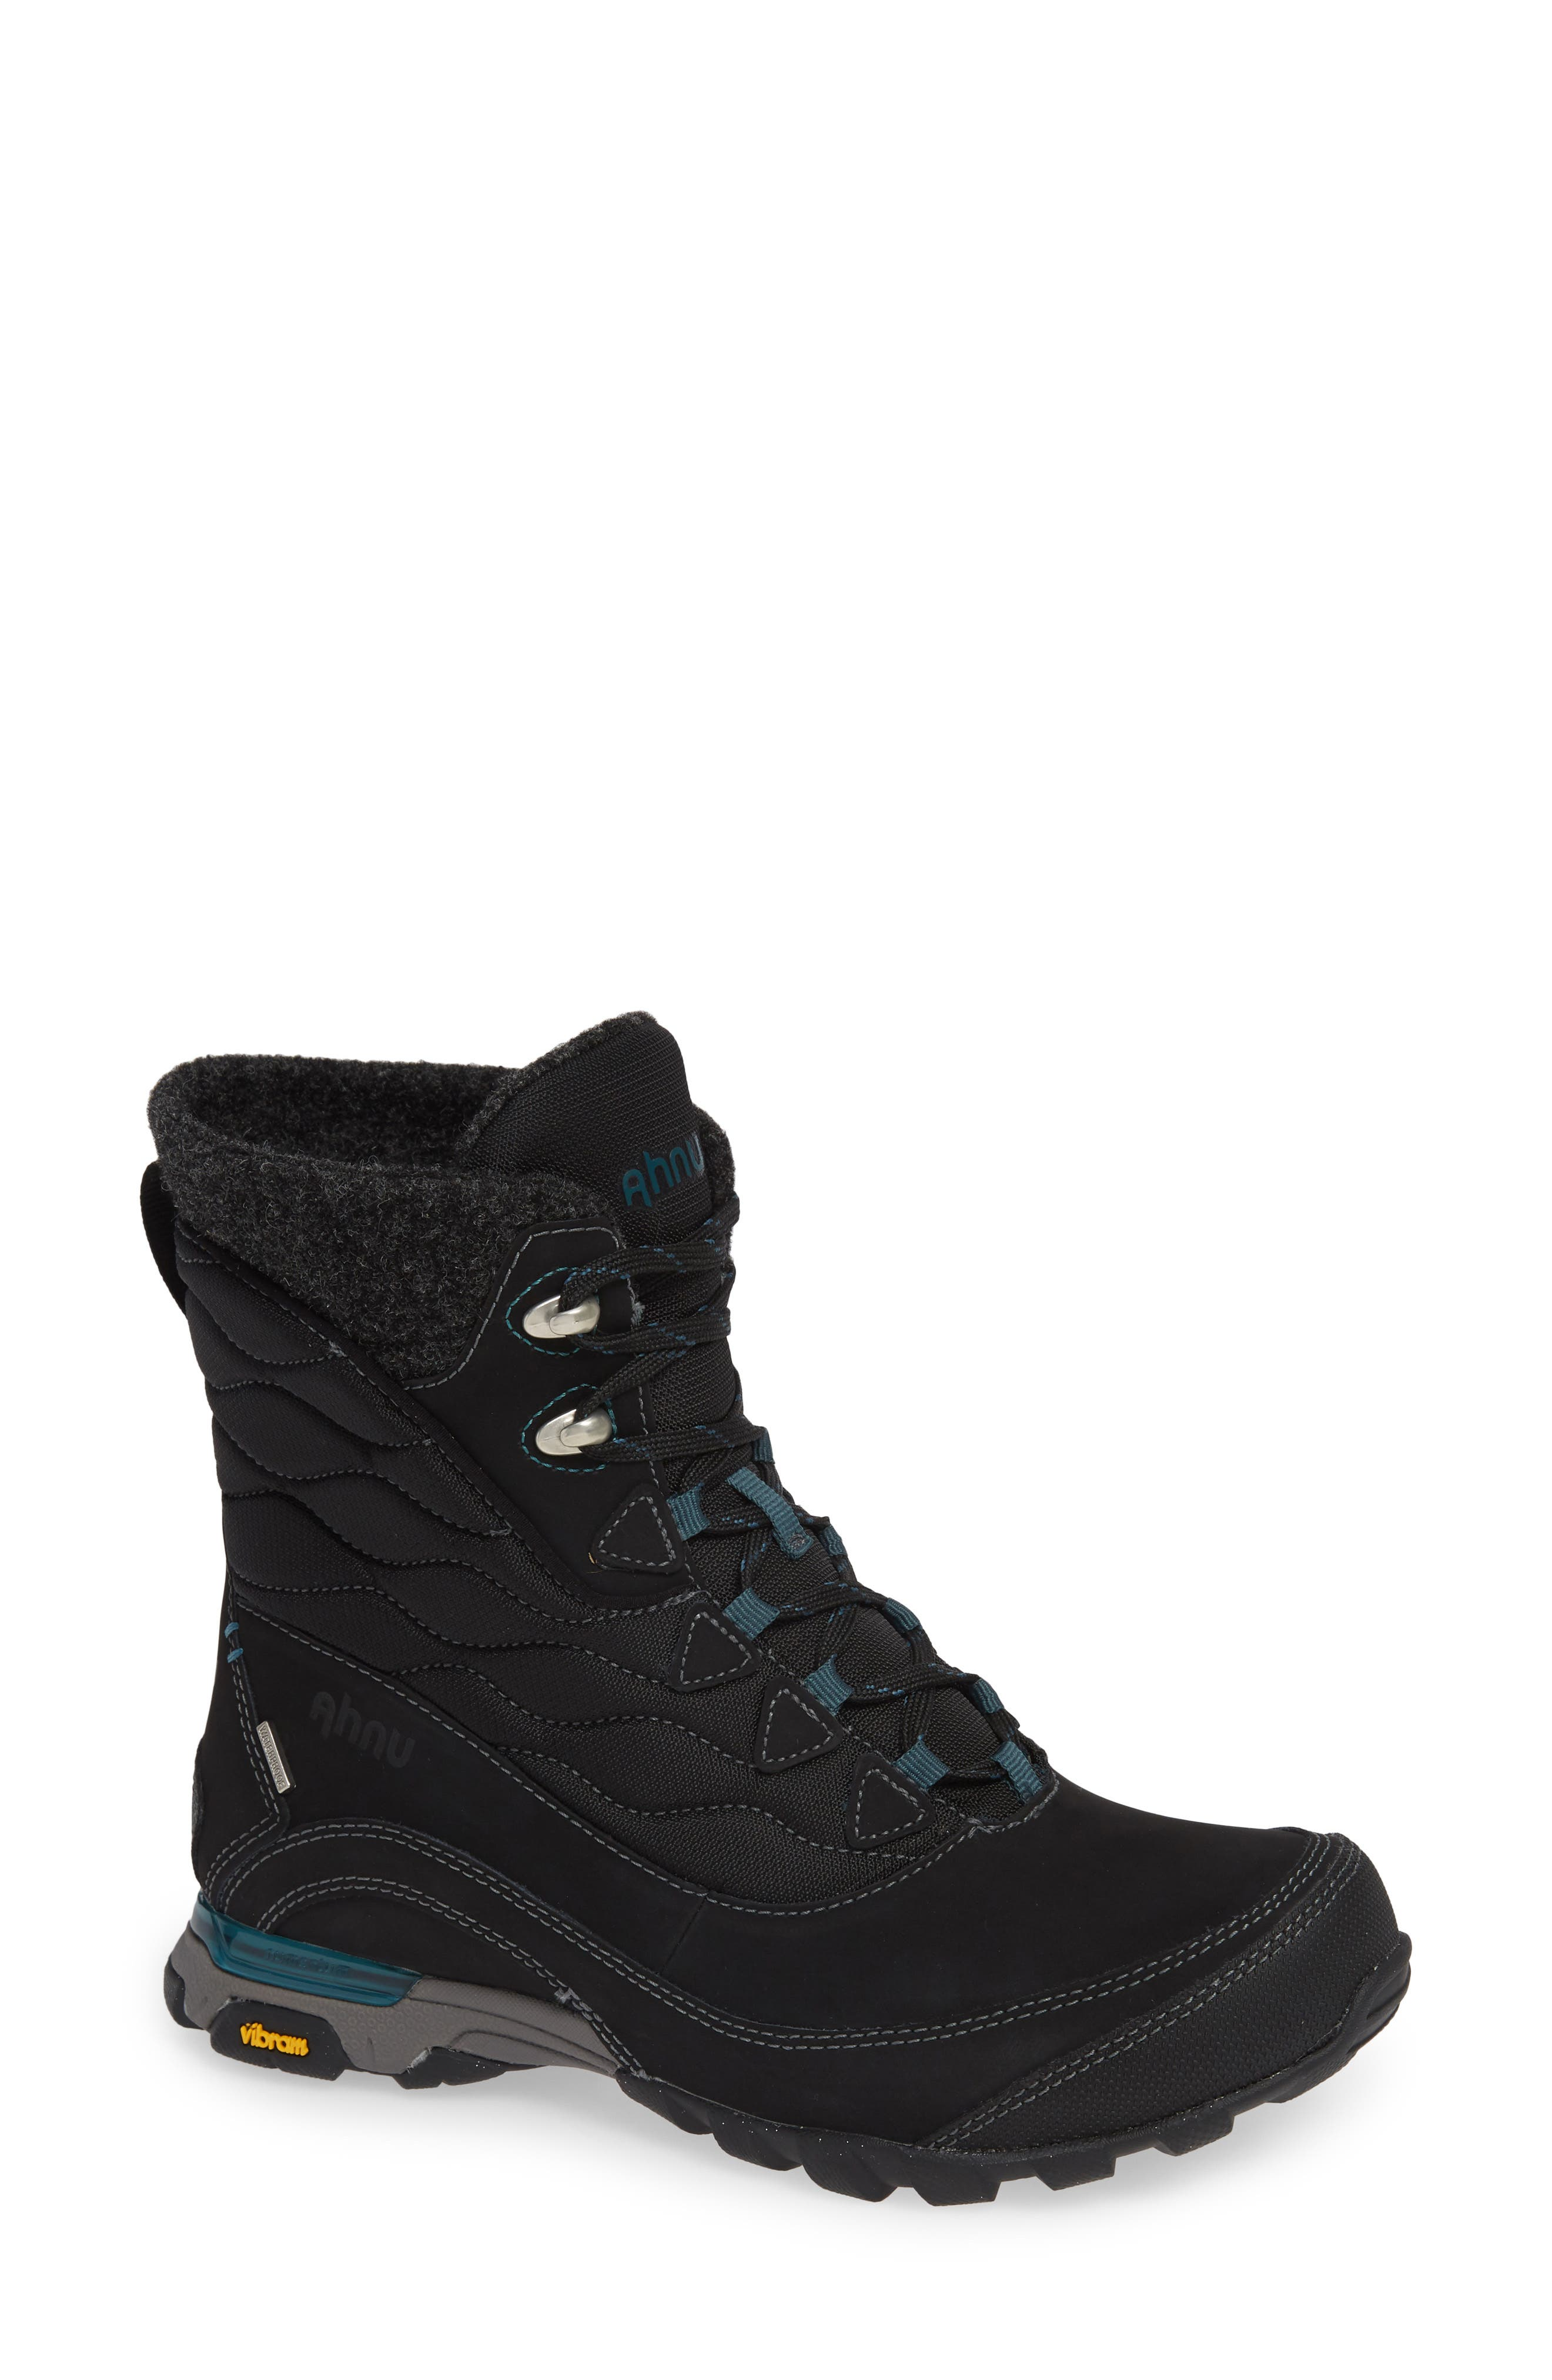 Ahnu by Teva Sugarfrost Insulated Waterproof Boot,                             Main thumbnail 1, color,                             BLACK LEATHER